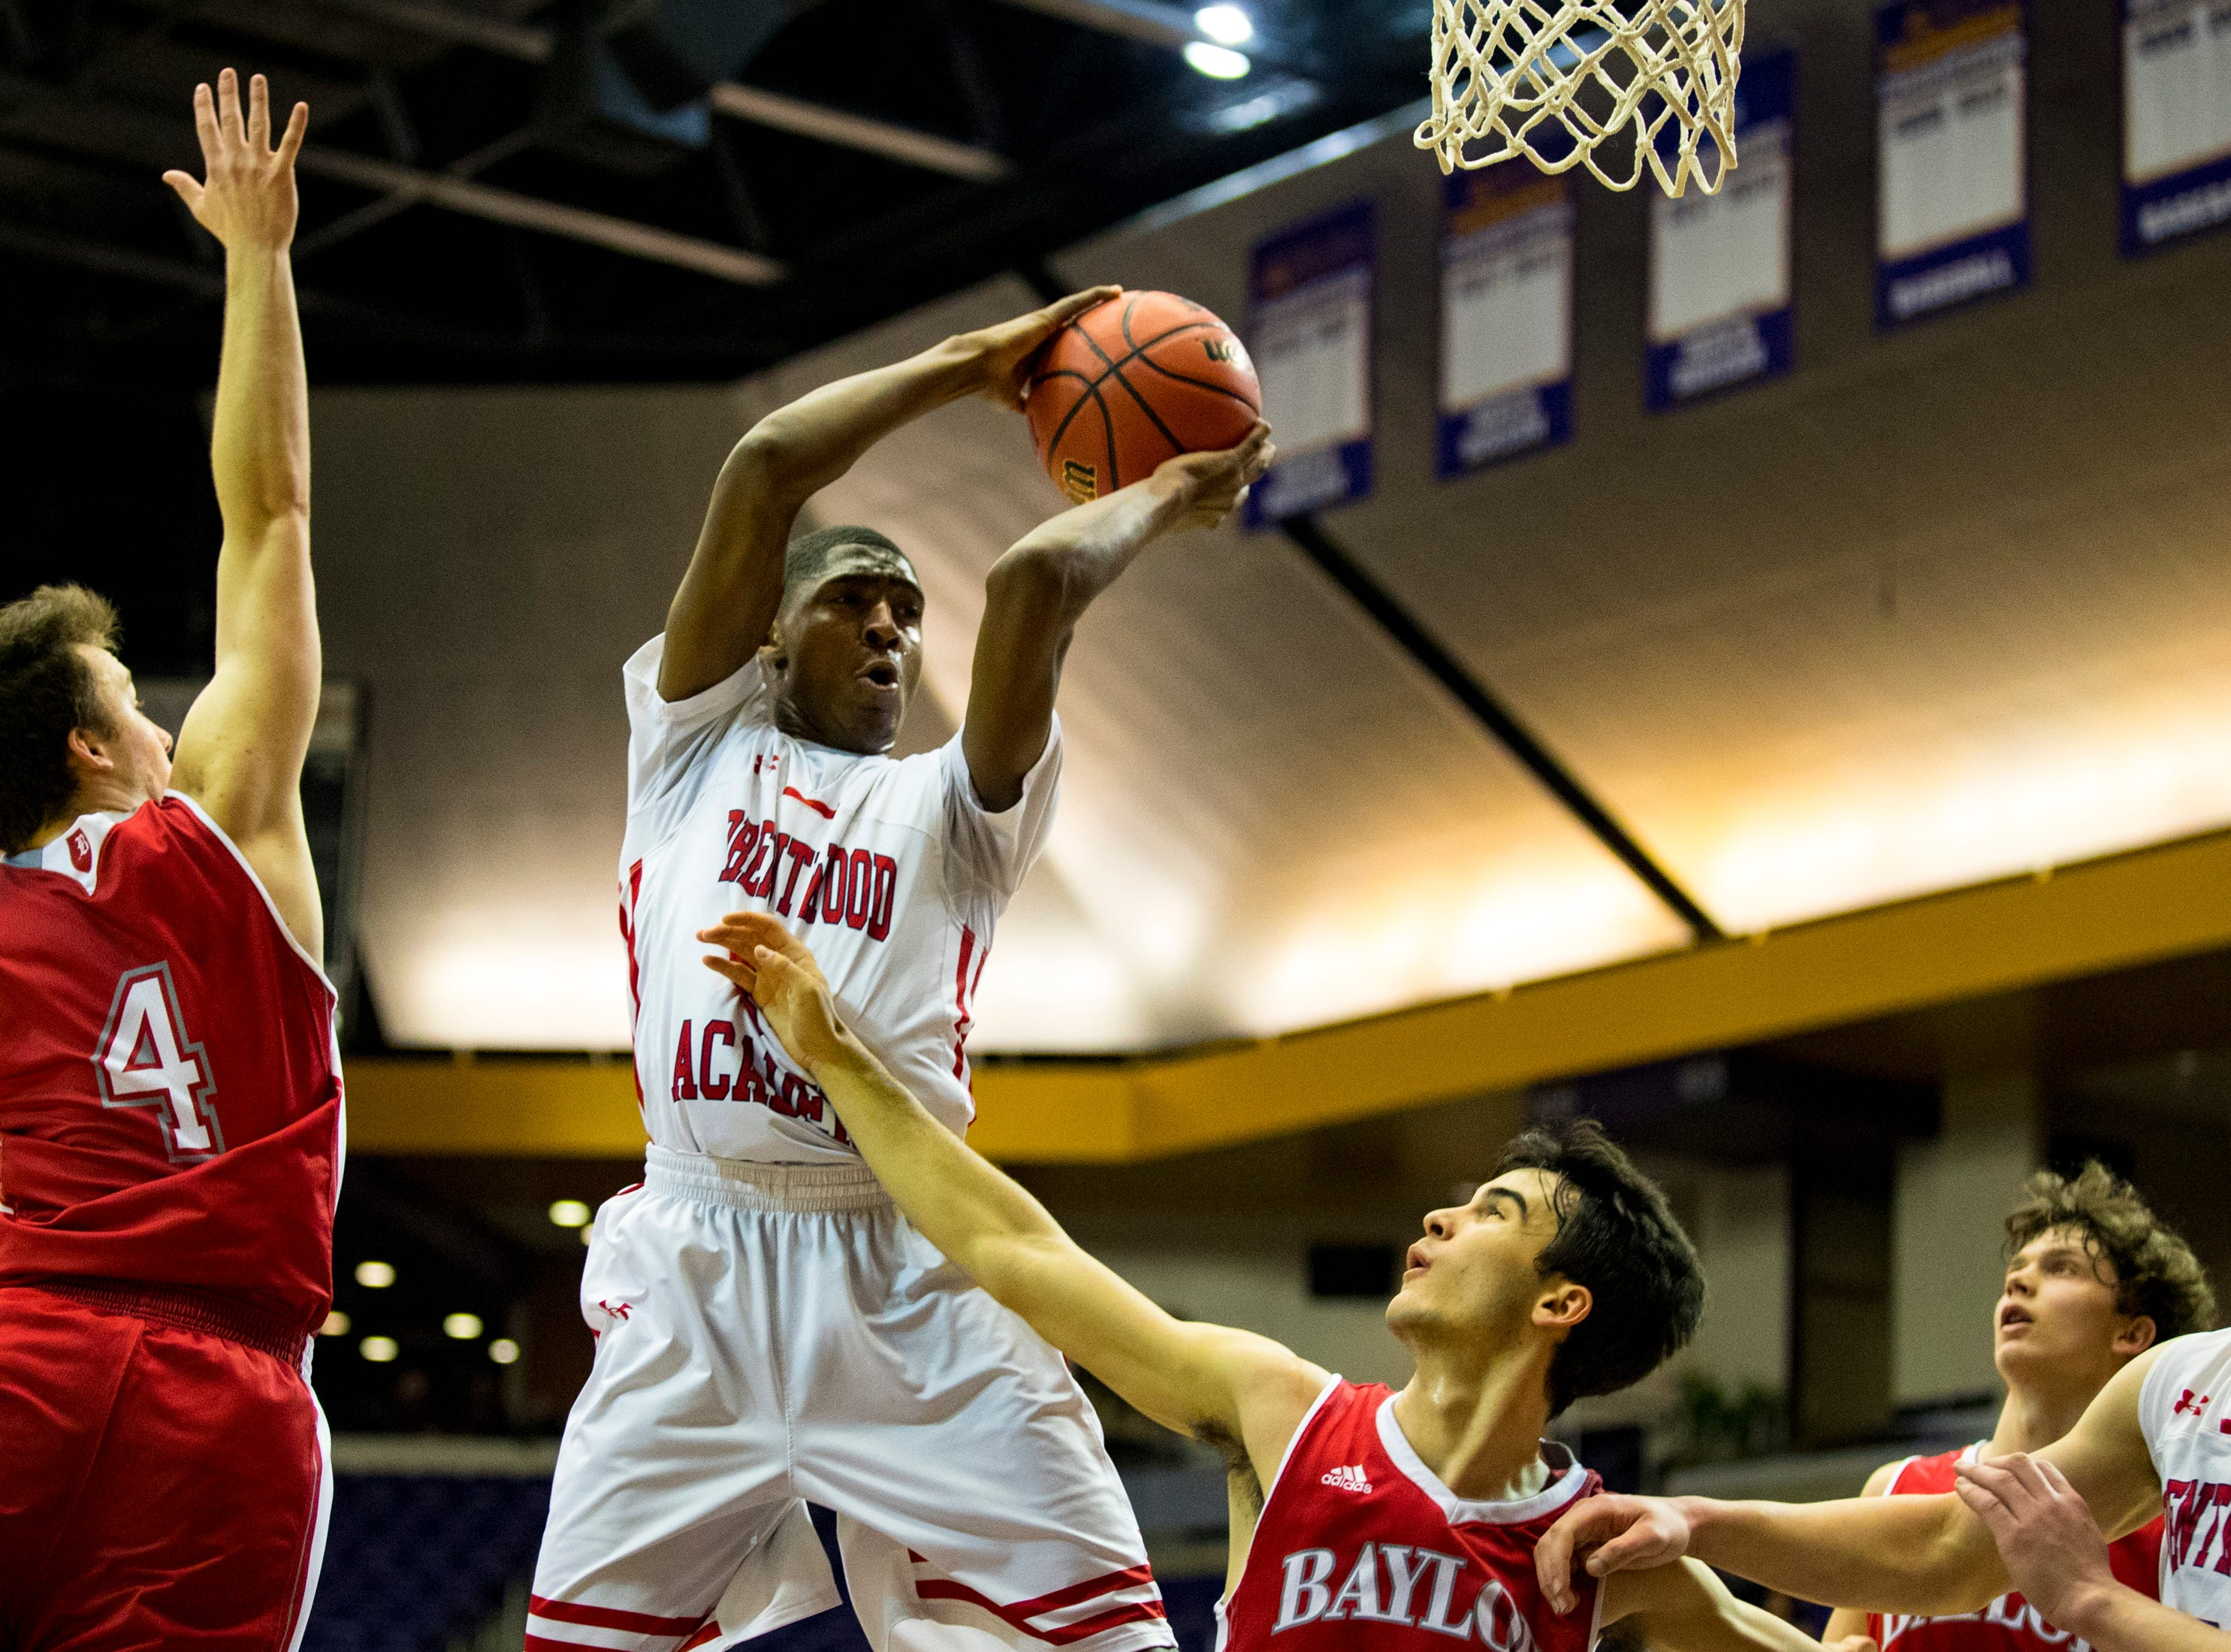 Brentwood Academy's Randy Brady (34) grabs a rebound during Brentwood Academy's game against Baylor in the semifinal round of the TSSAA Division II Class AA State Championships at Lipscomb University's Allen Arena in Nashville on Thursday, Feb. 28, 2019.